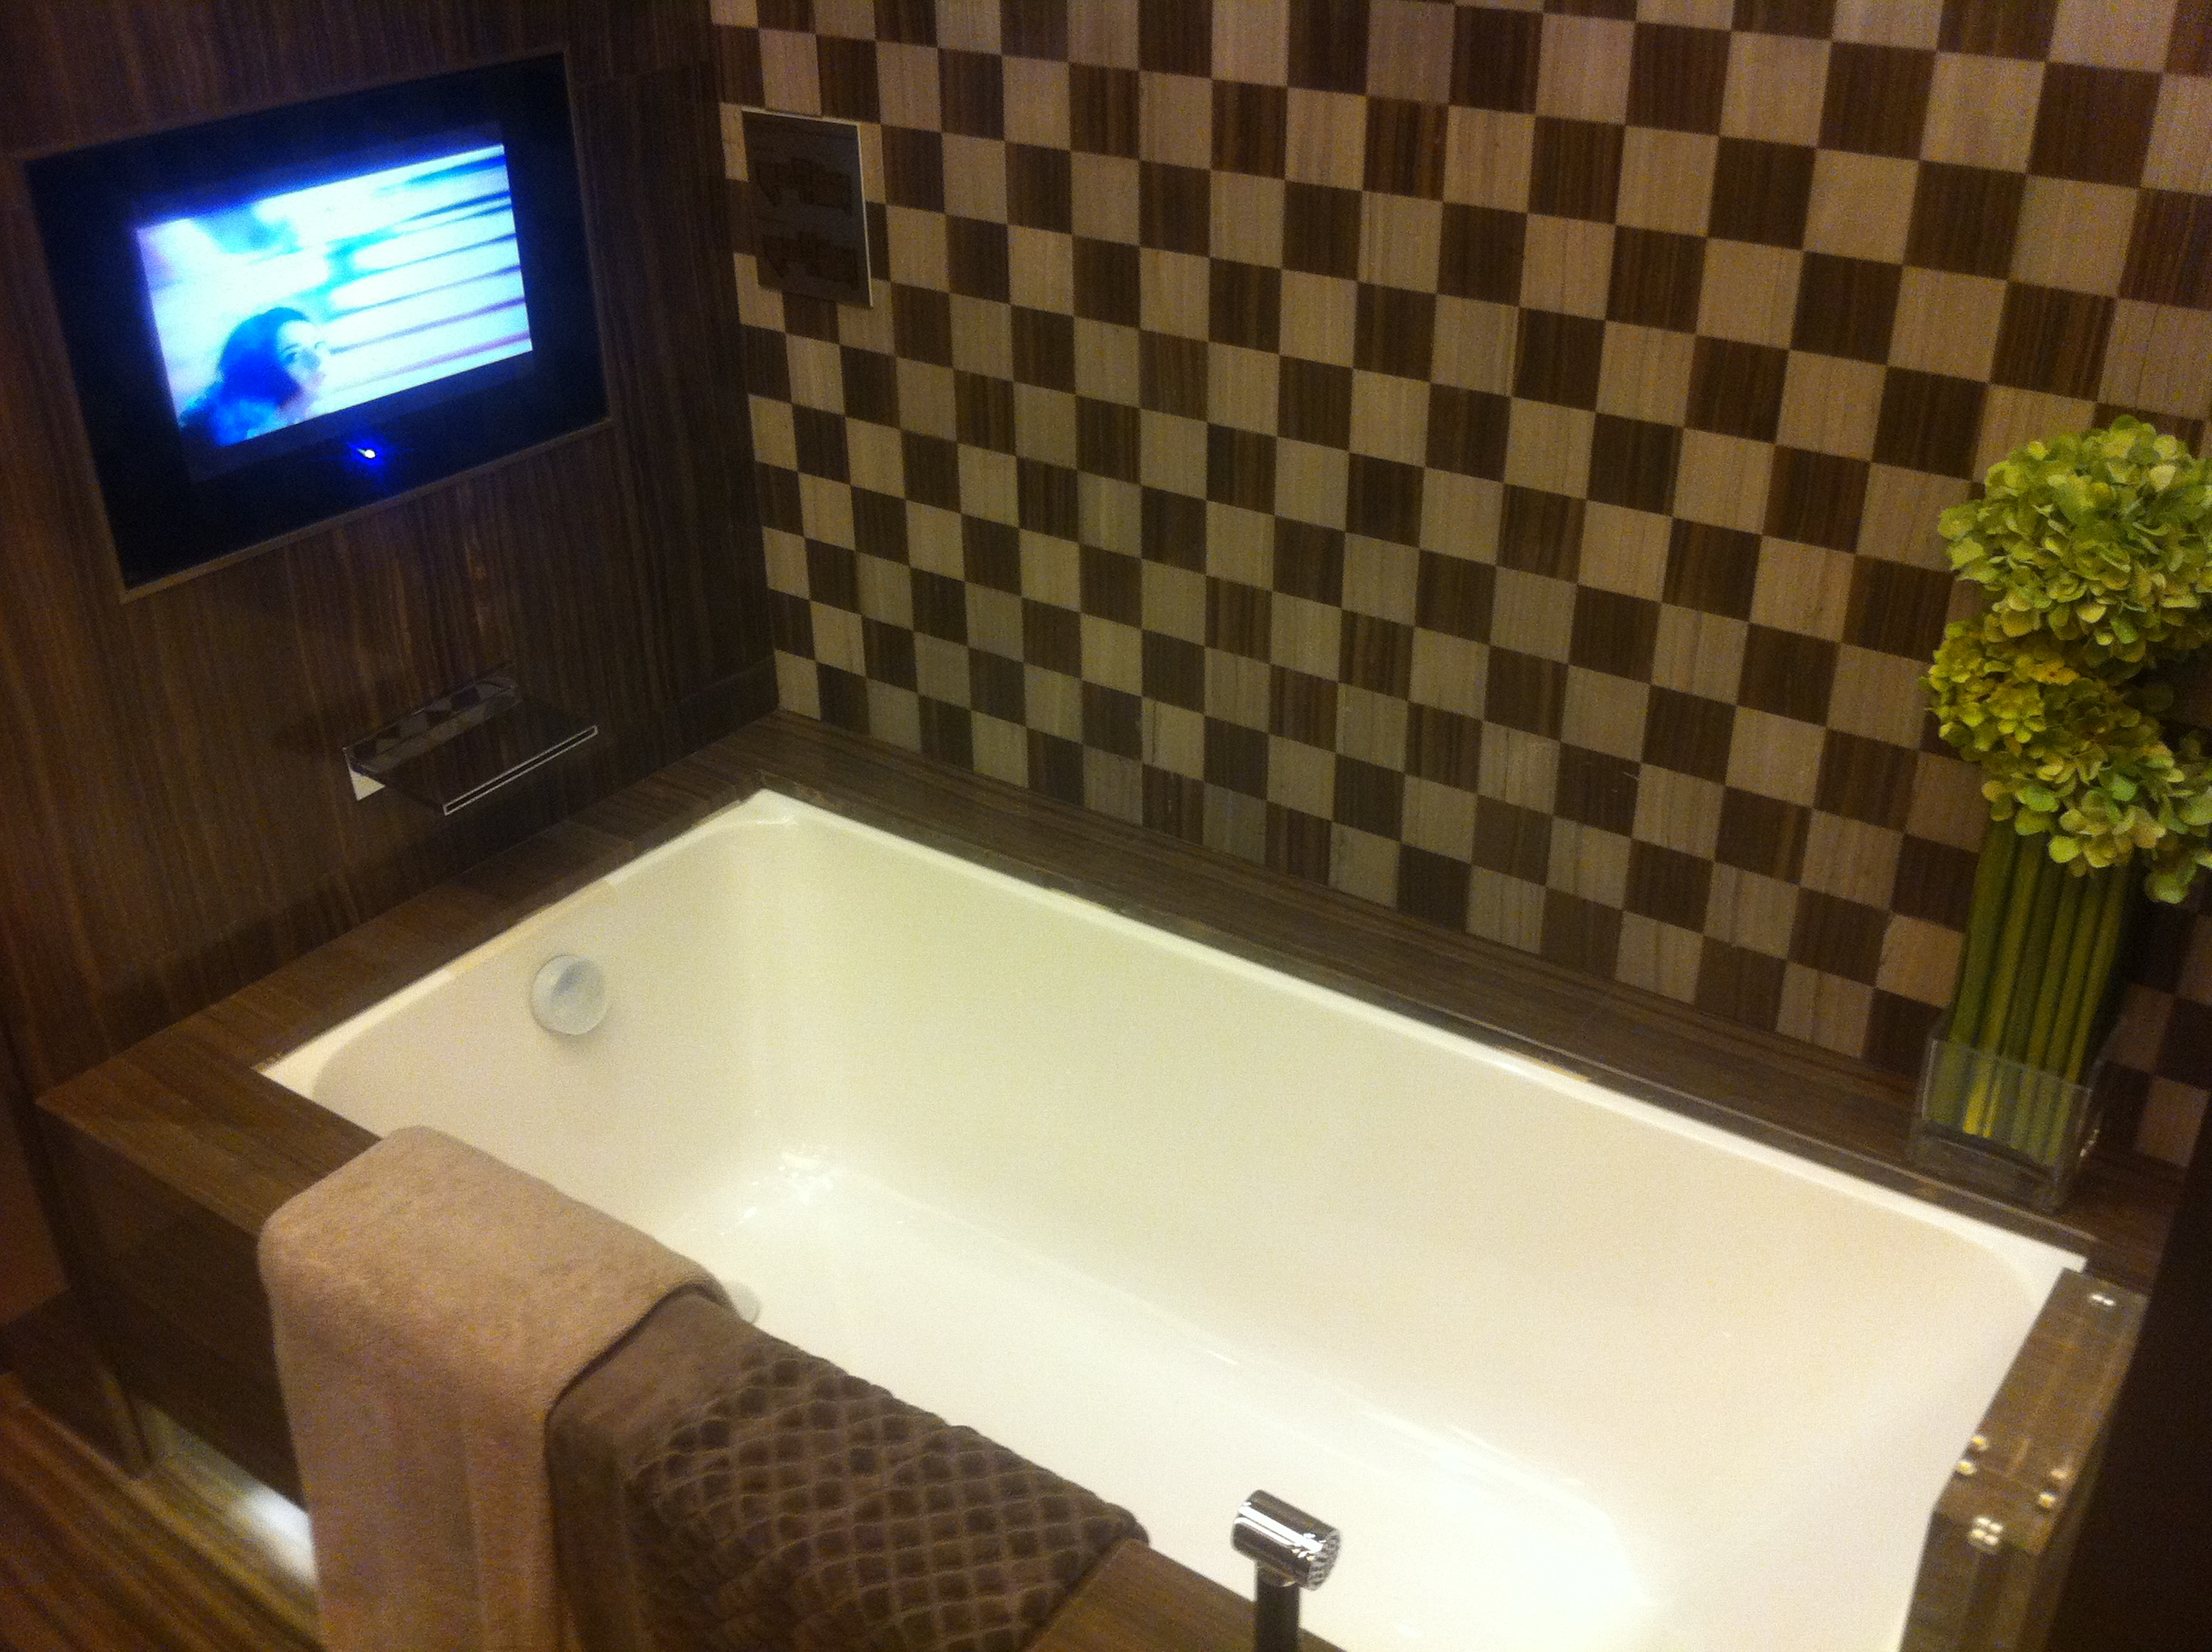 Tv In The Bathroom Amazing Filehk Kennedy Town 寶翠園Belcher's Showflat 昇御門 Chatham Gate Design Inspiration